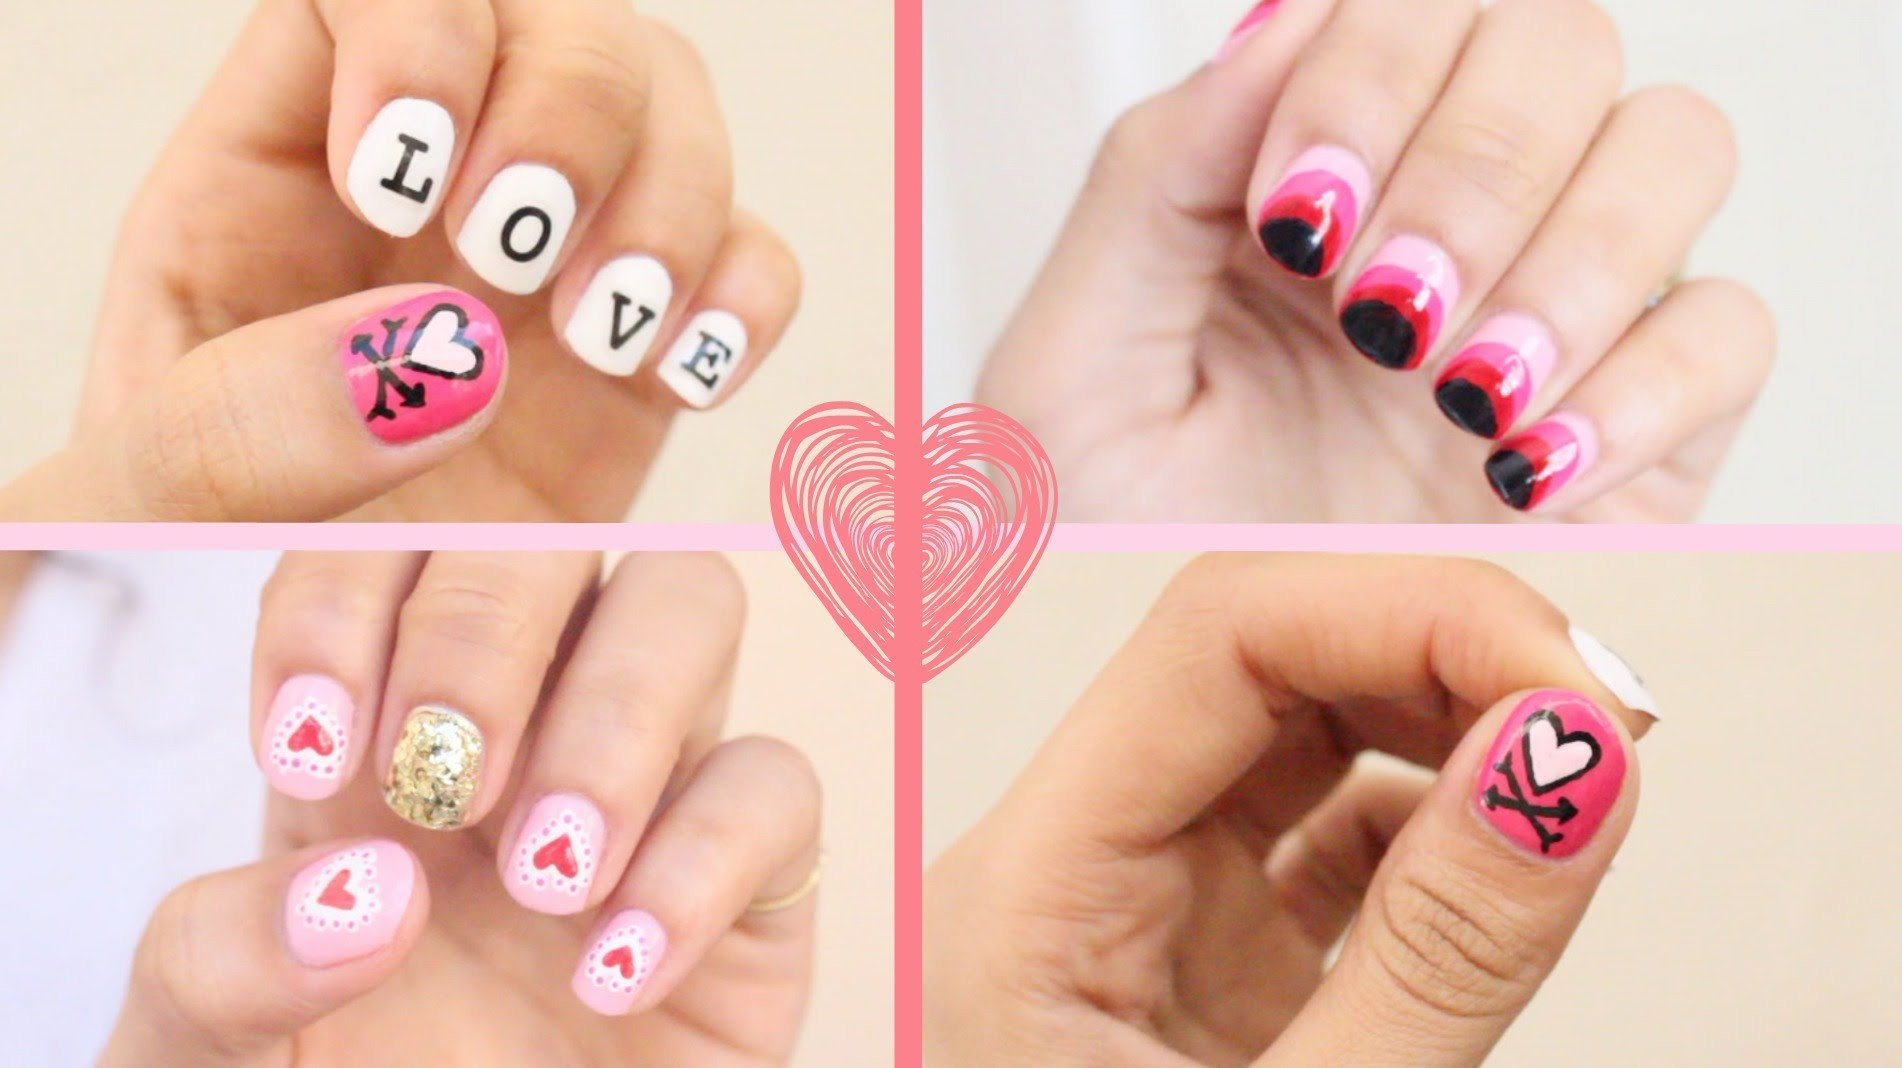 Nail Art Valentines Day Design  Cute And Cool Valentine's Day Nail Art Design Ideas – Your